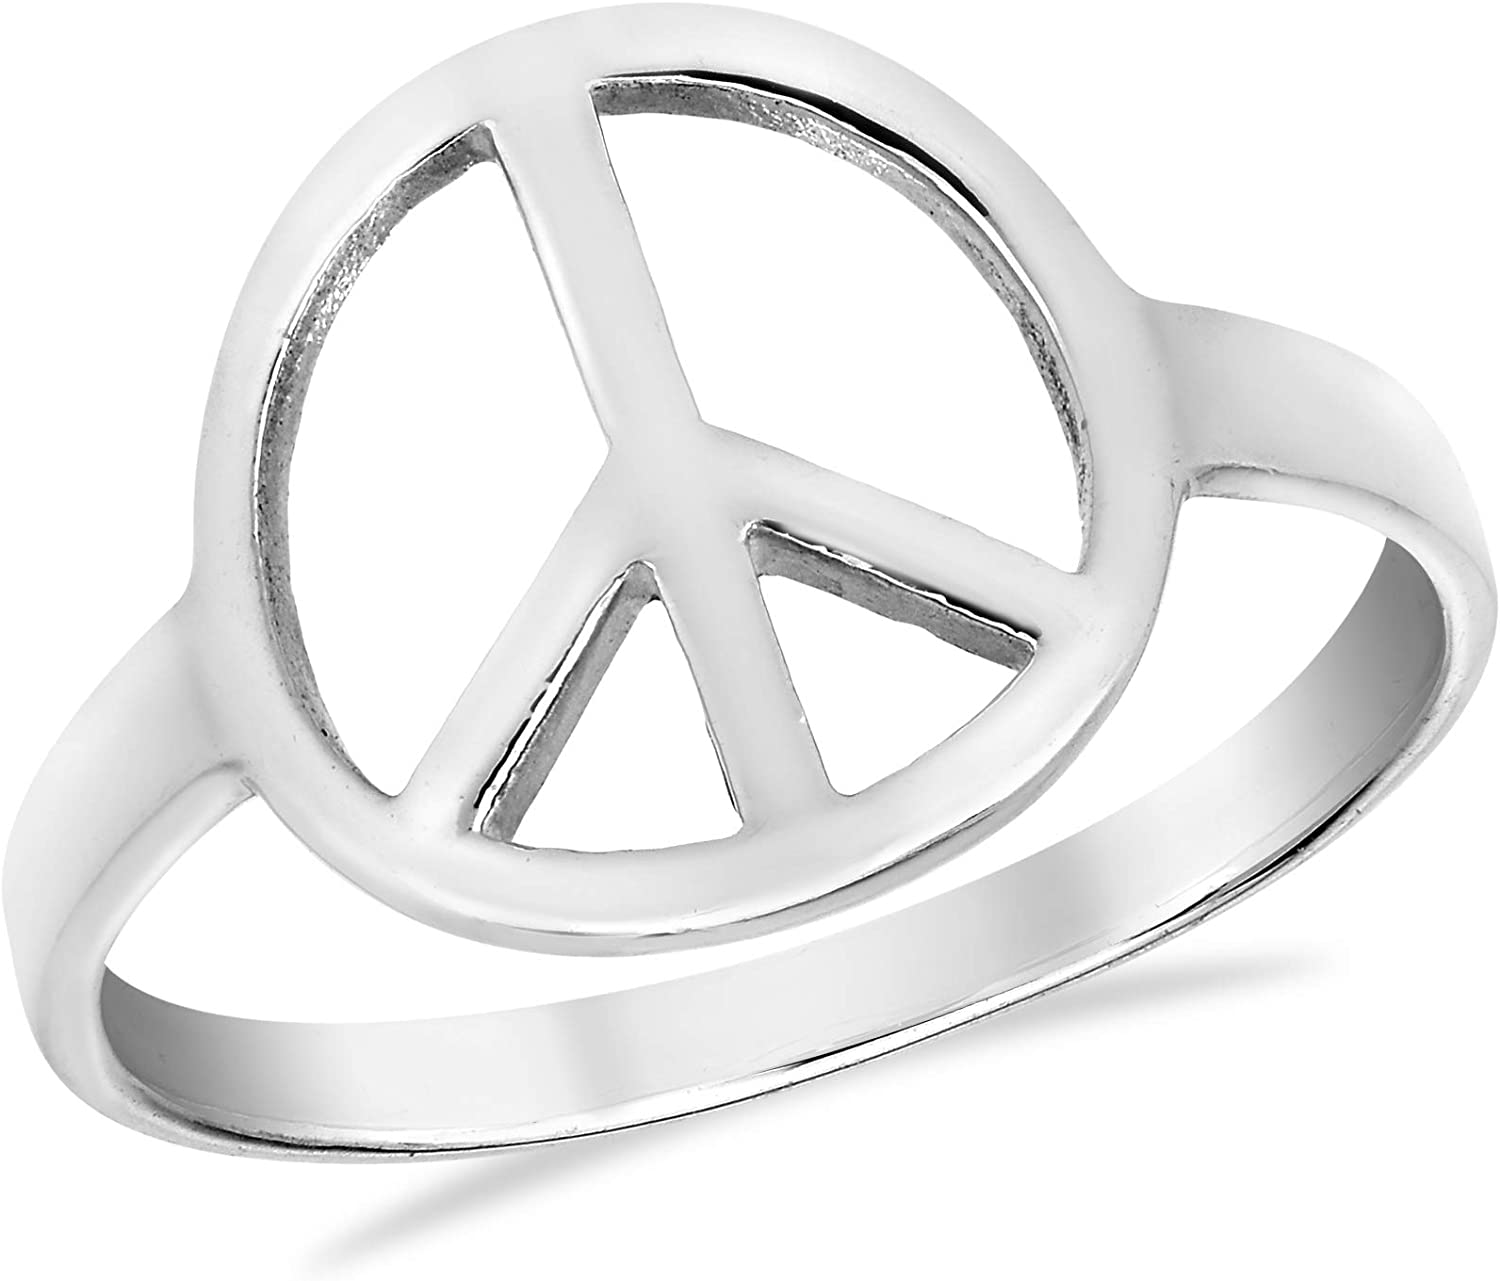 Shiny Peace Sign No War .925 Sterling Silver Ring